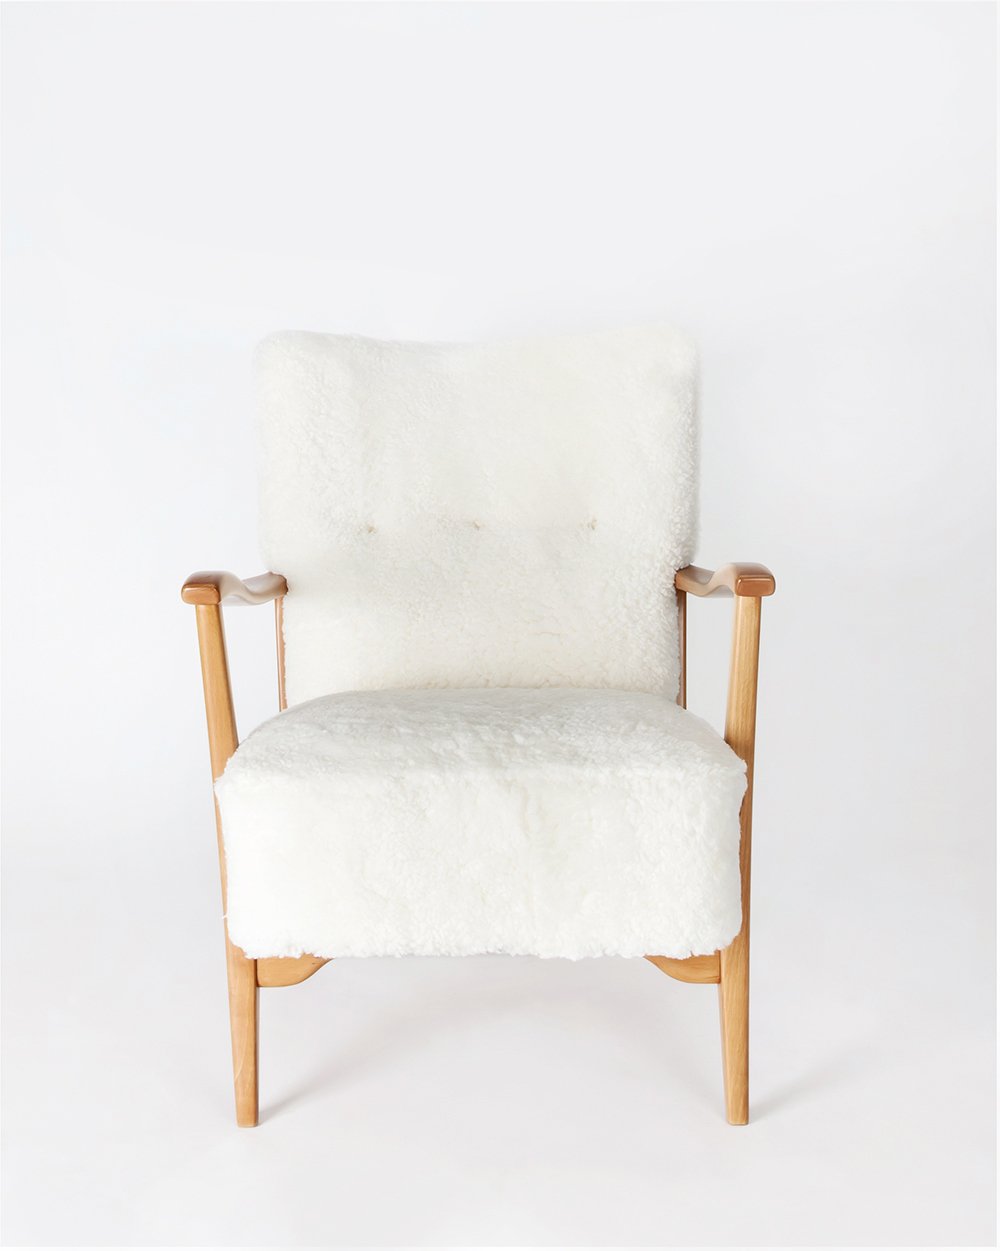 Twin Scandinavian Modern Chairs (Pair)